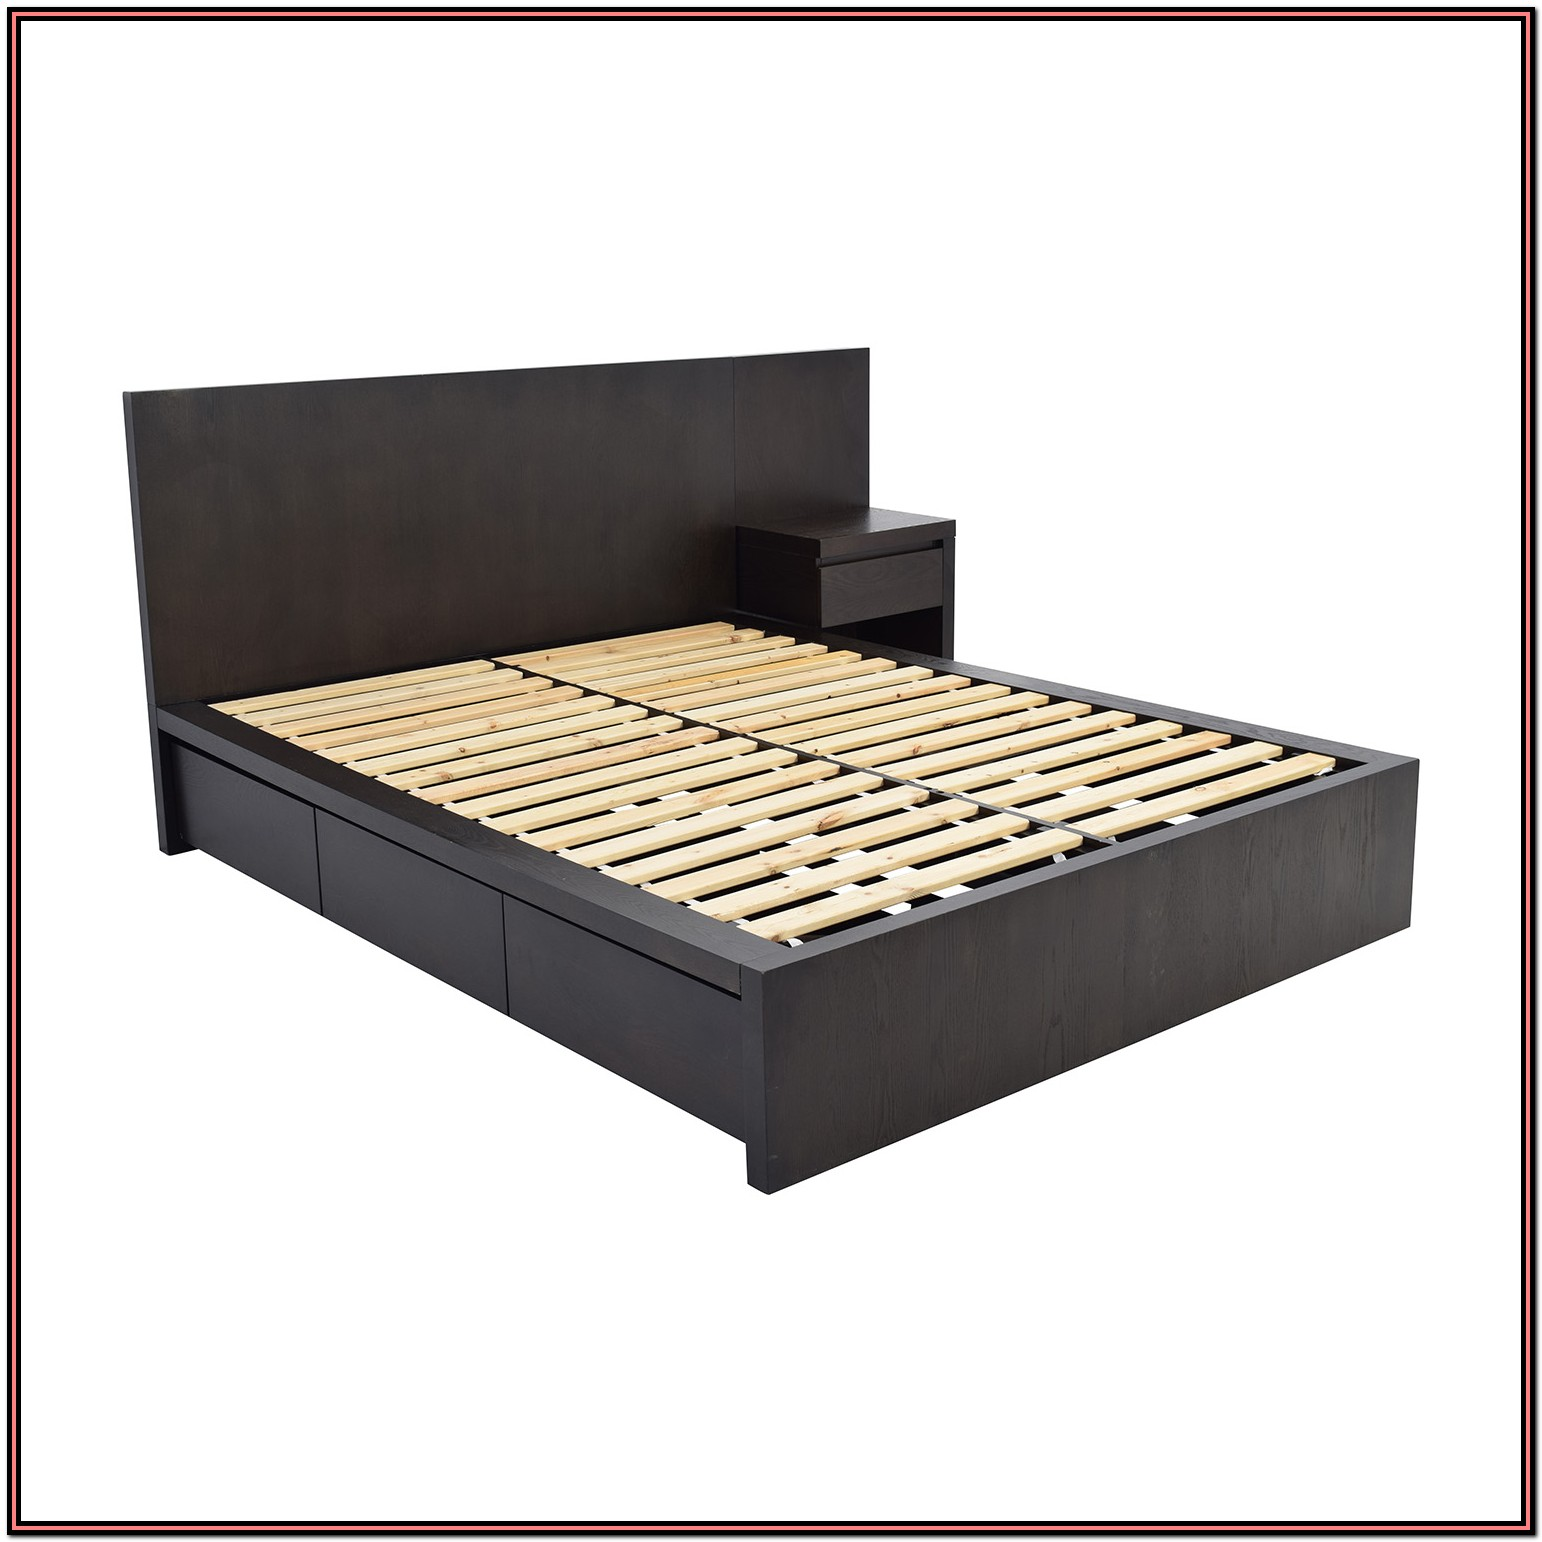 Queen Platform Beds With Storage And Headboard